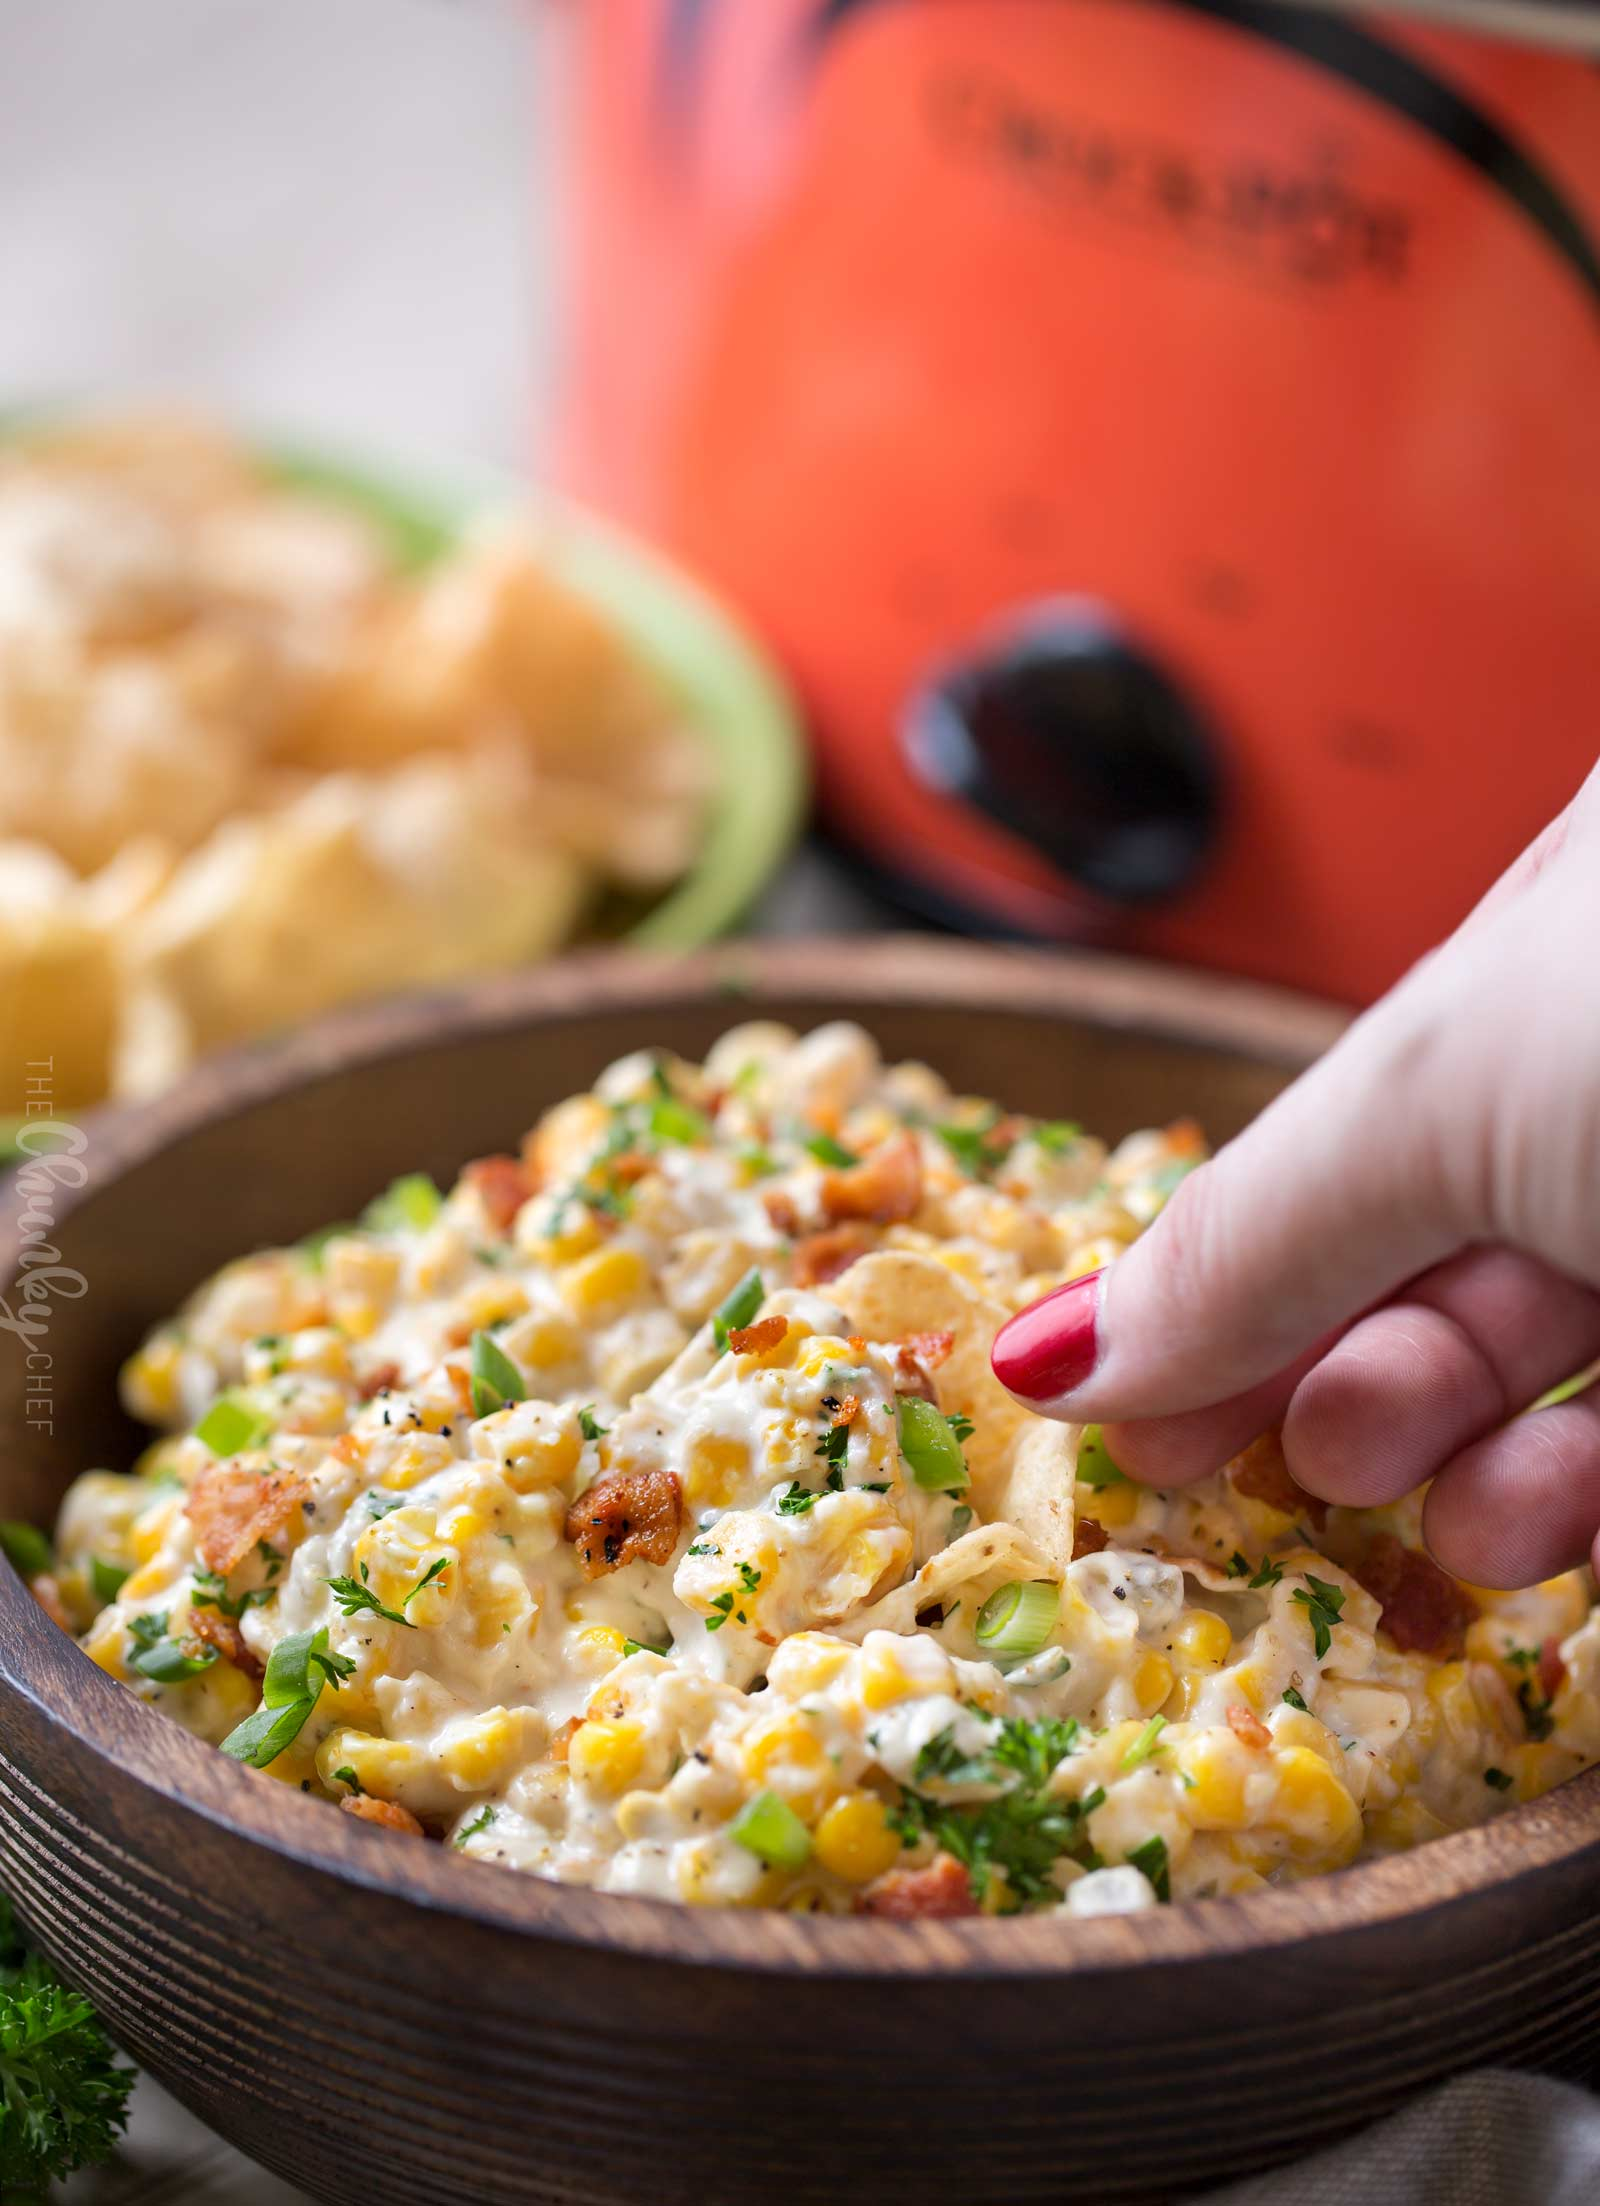 Chip scooping corn dip from wooden bowl